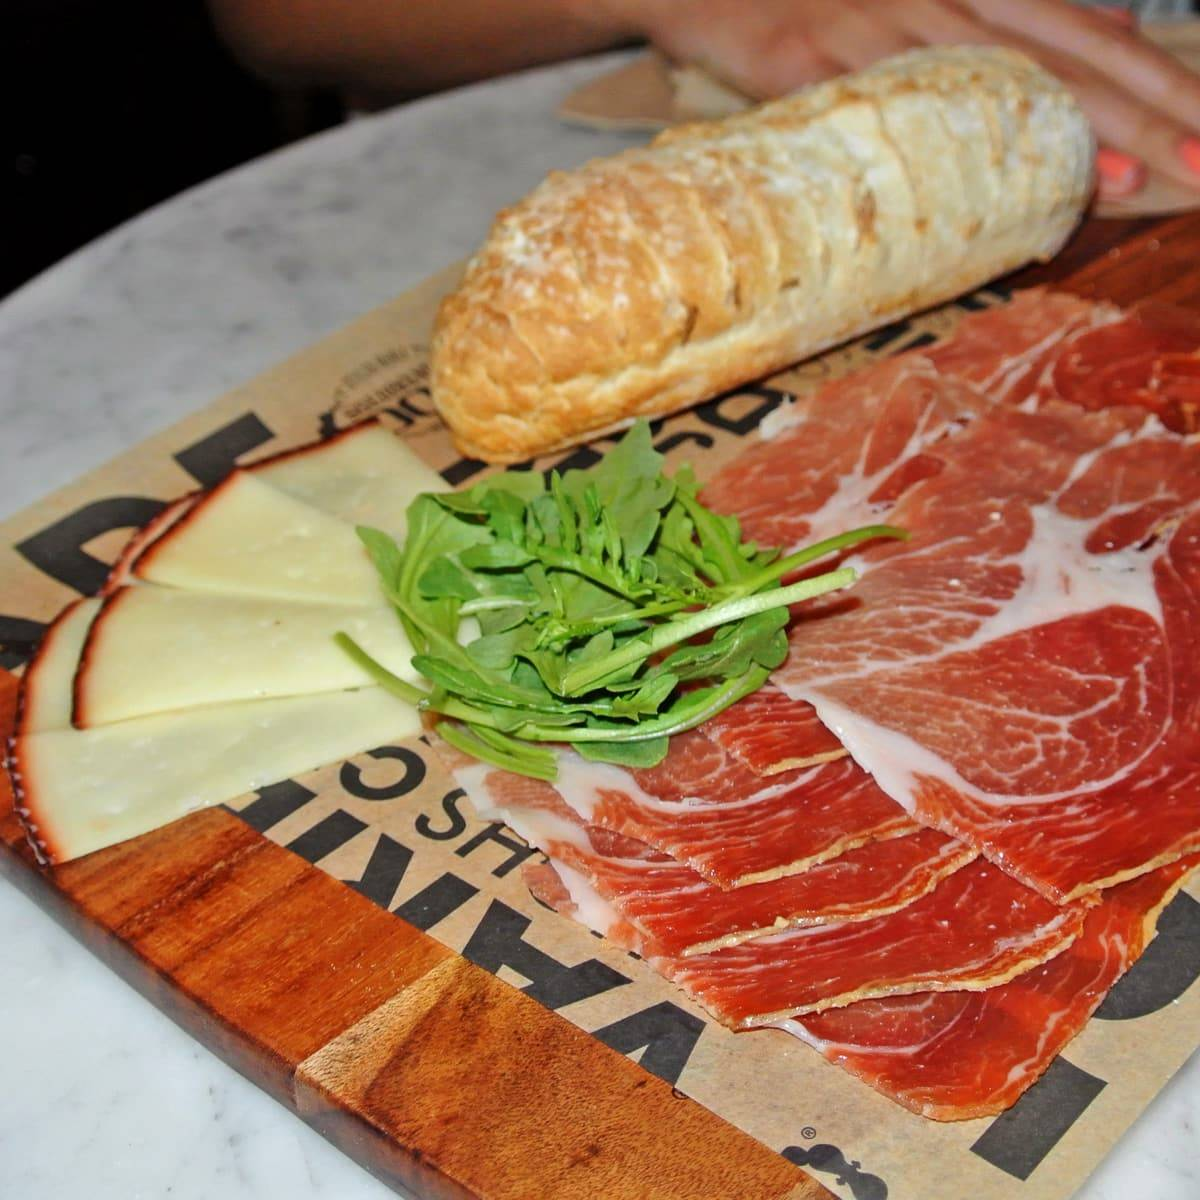 Sangria, Cured Meats, Other Spanish Imports at 100 Montaditos in Greenwich Village